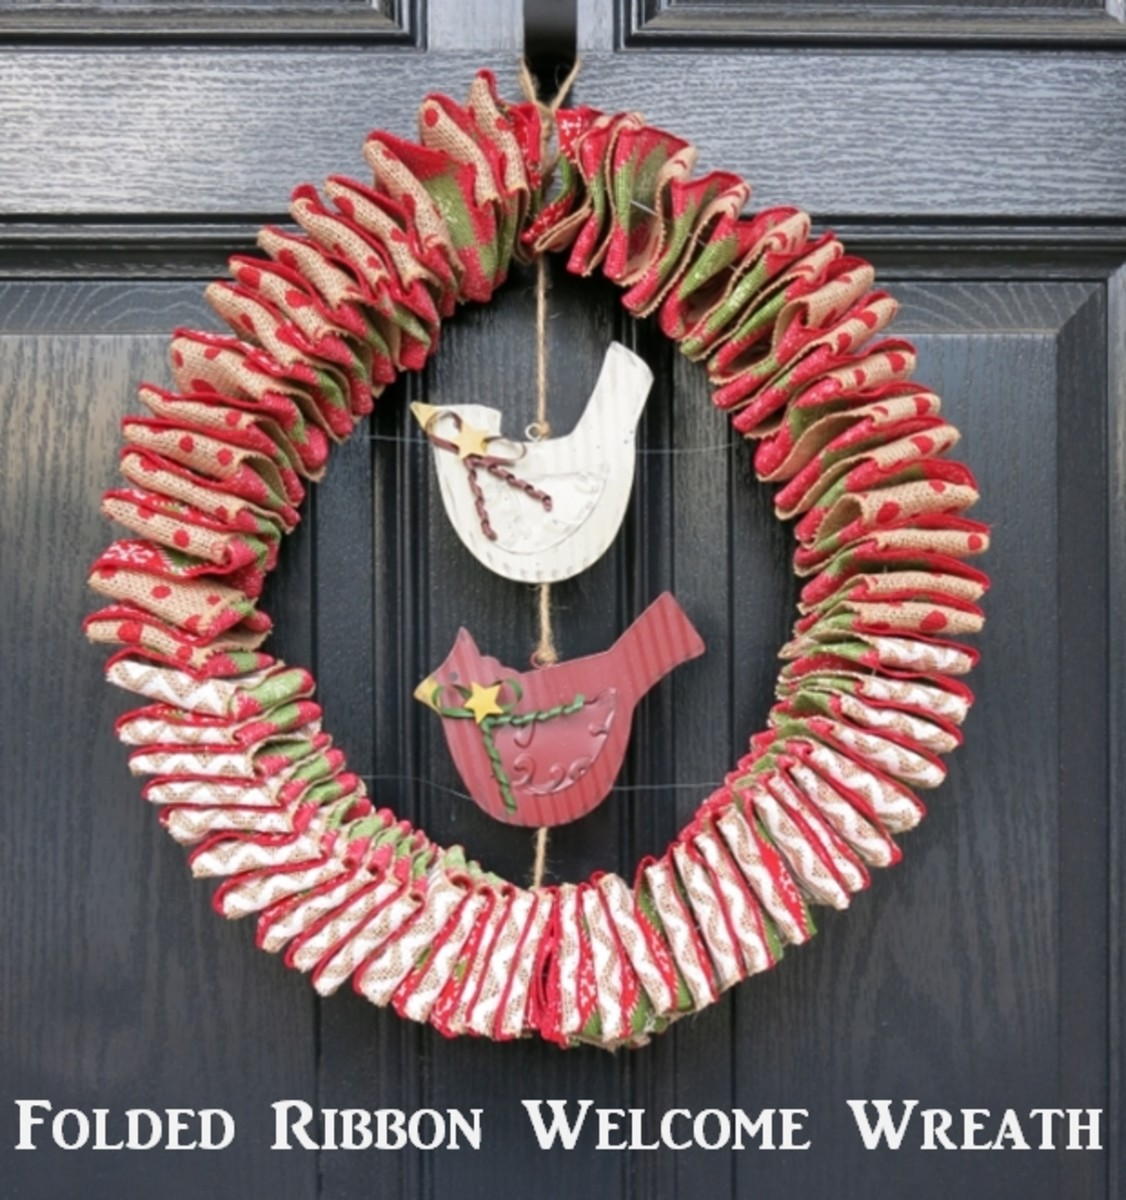 diy-craft-decoration-folded-ribbon-welcome-wreath